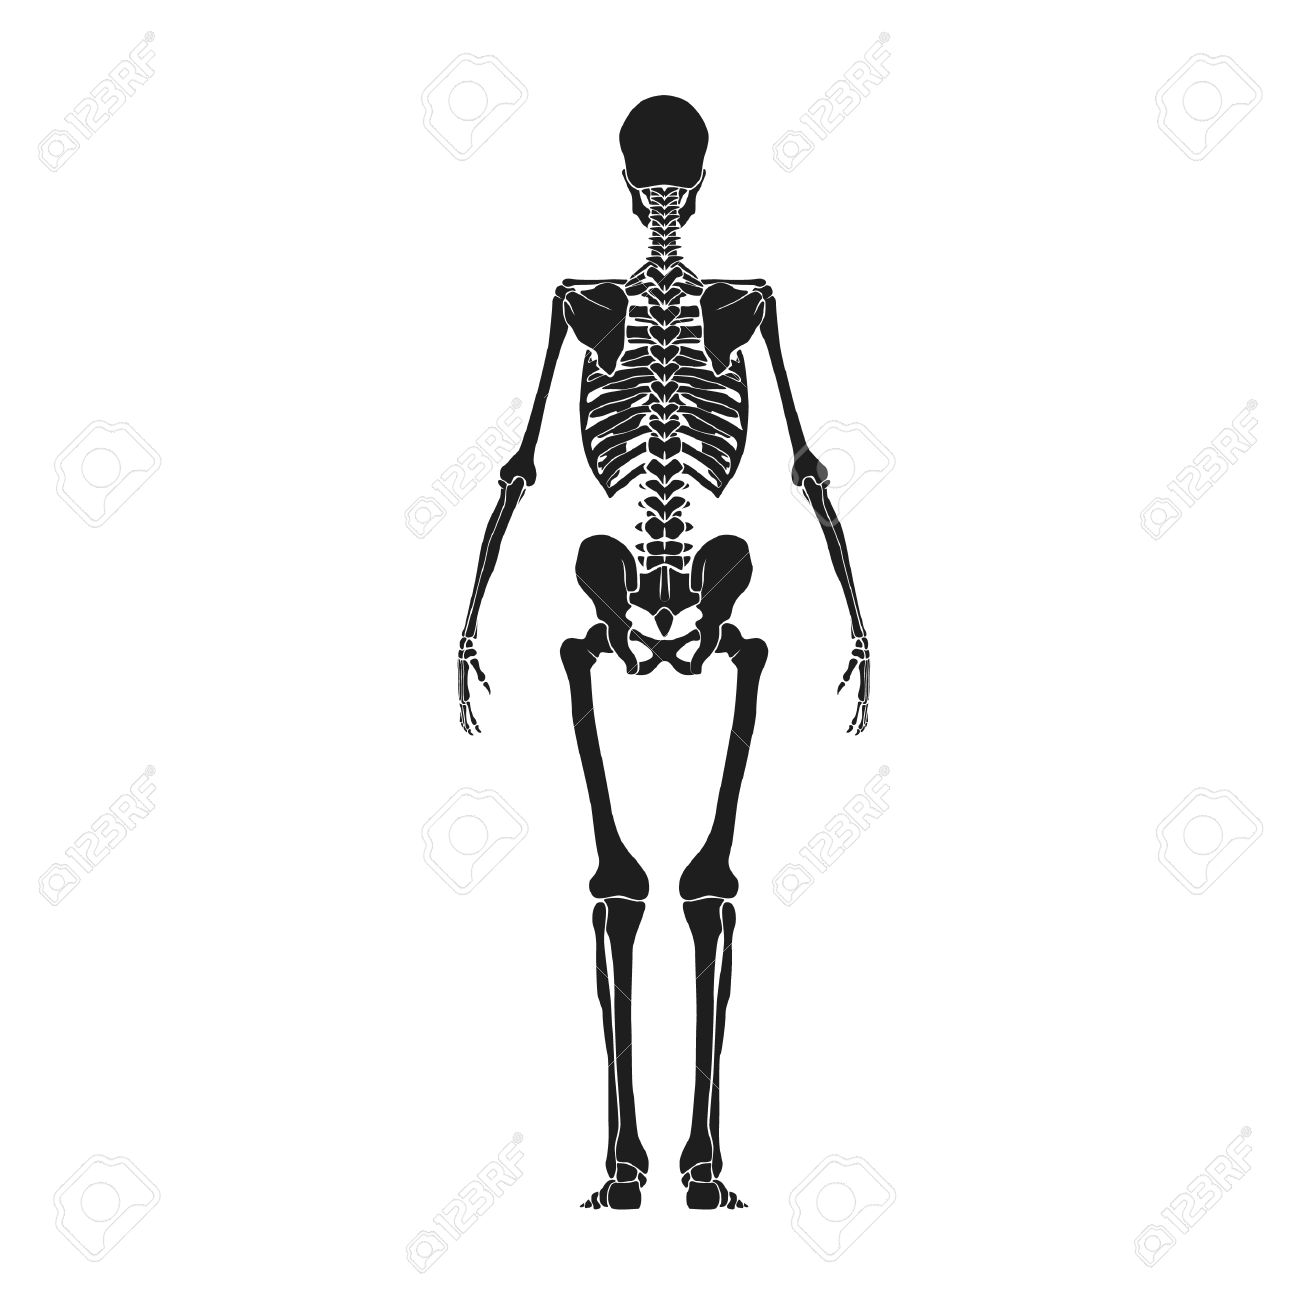 Back View Of Human Skeleton Royalty Free Cliparts Vectors And